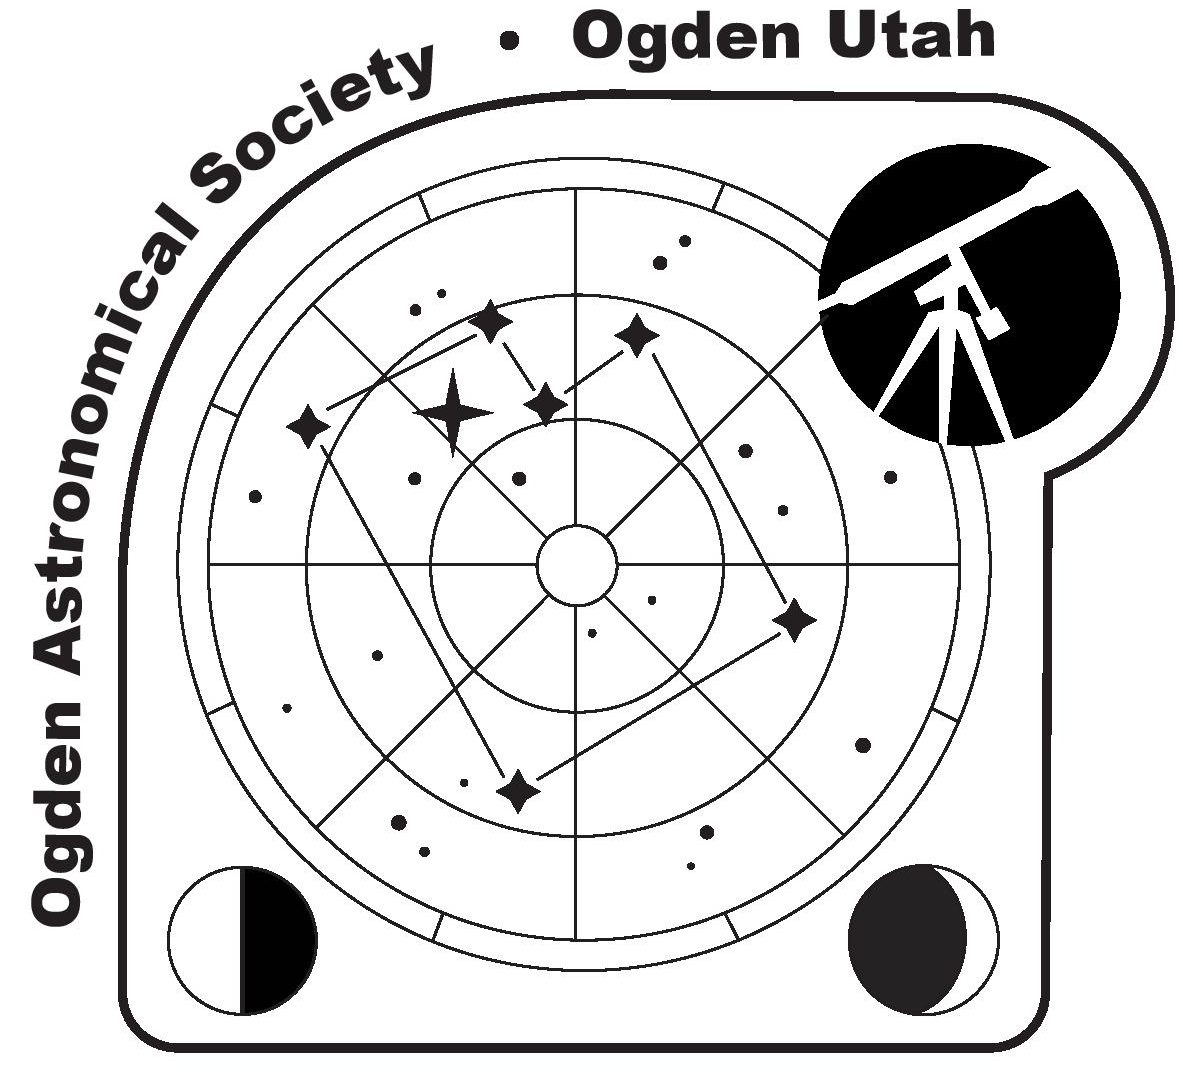 http://ogdenastronomy.org/wp-content/uploads/2018/02/cropped-OAS_logo-page-001.jpg